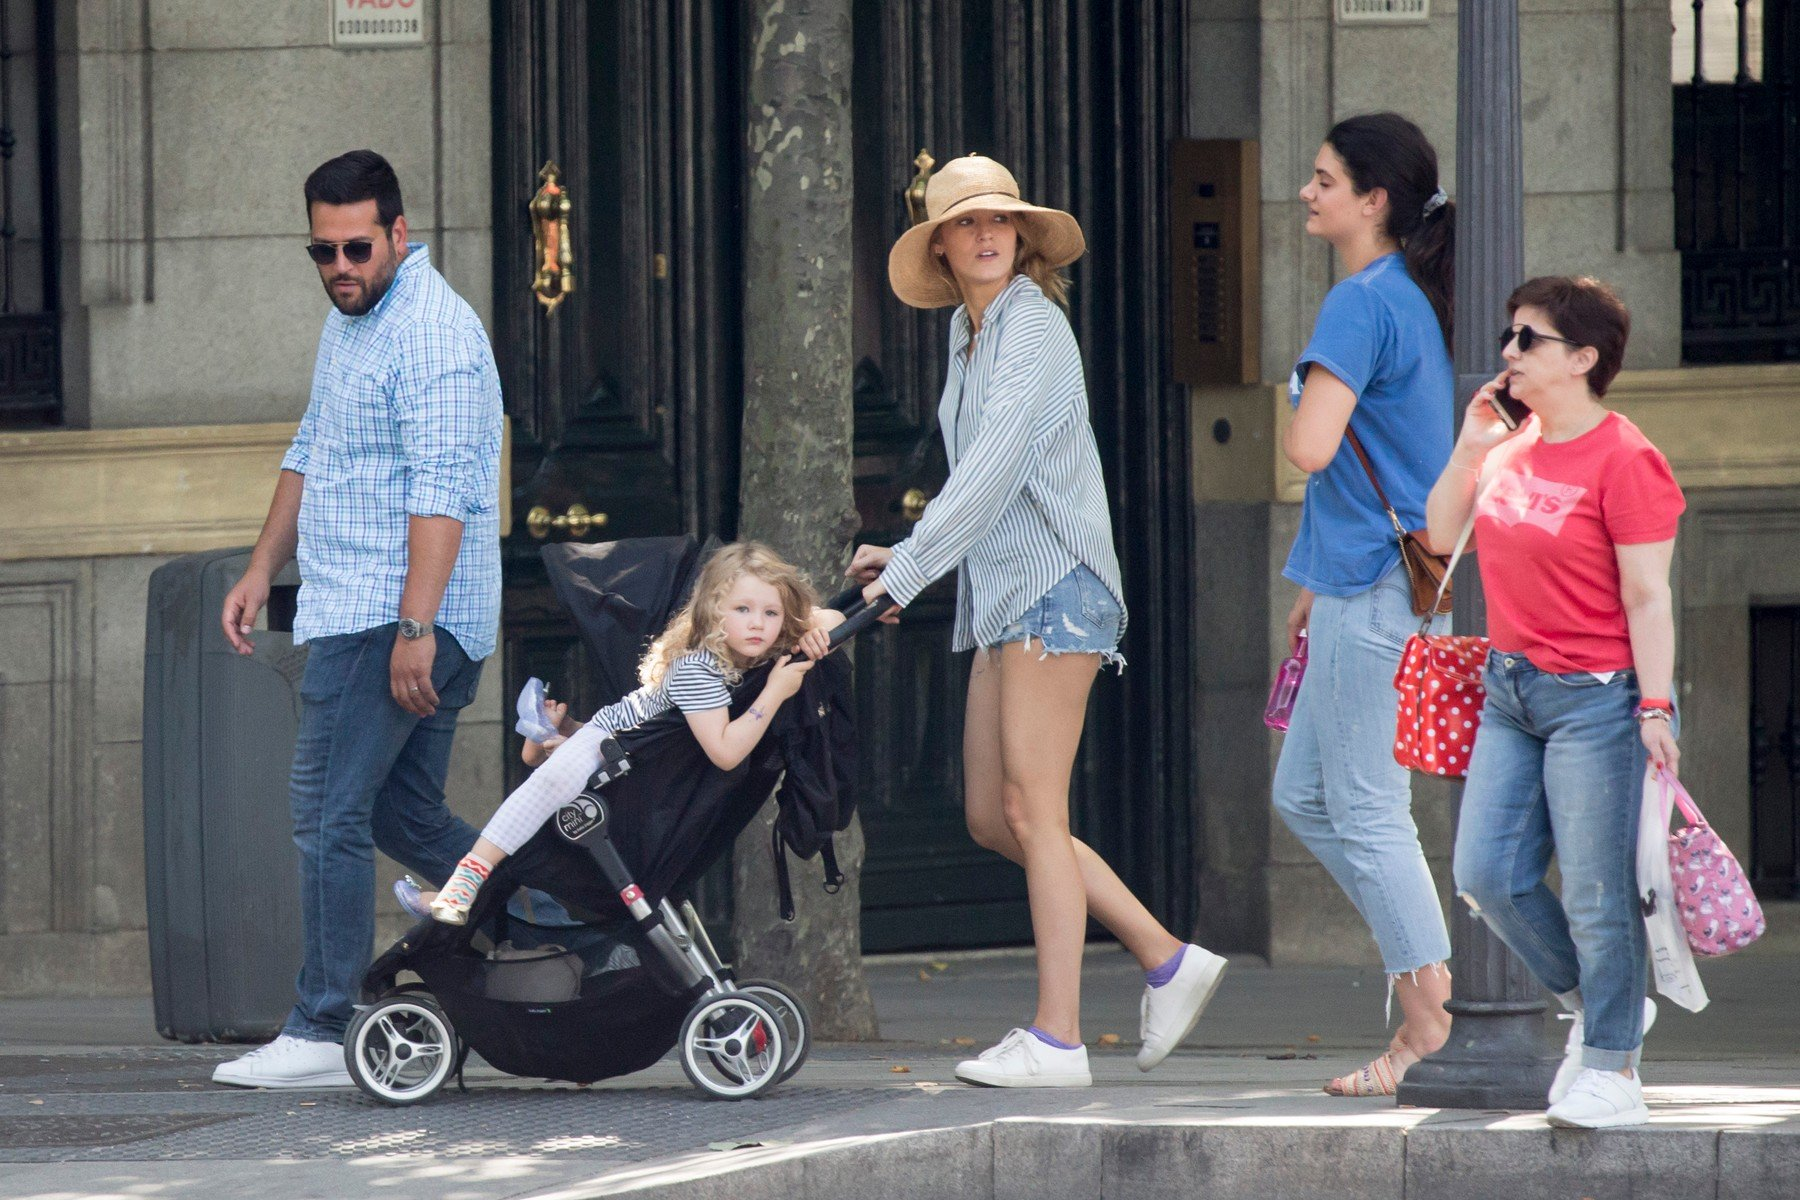 EXCLUSIVE: Blake Lively enjoys a family time during a break of her filming in Madrid. She spent the evening with her children in a playground.  ***SPECIAL INSTRUCTIONS*** Please pixelate children's faces before publication.***. 23 Jun 2018, Image: 375839784, License: Rights-managed, Restrictions: ONLY Australia, Austria, Belarus, Belgium, Bulgaria, Canada, China, Croatia, Czech Republic, Denmark, Estonia, Finland, Germany, Greece, Hungary, India, Ireland, Israel, Italy, Japan, Latvia, Liechtenstein, Lithuania, Luxembourg, Macedonia, Malta, Monaco, Montenegro, Netherlands, New Caledonia, New Zealand, Norway, Philippines, Poland, Portugal, Romania, Russia, Serbia, Slovakia, Slovenia, Sweden, Switzerland, Turkey, United Kingdom, United States, Model Release: no, Credit line: Profimedia, Mega Agency